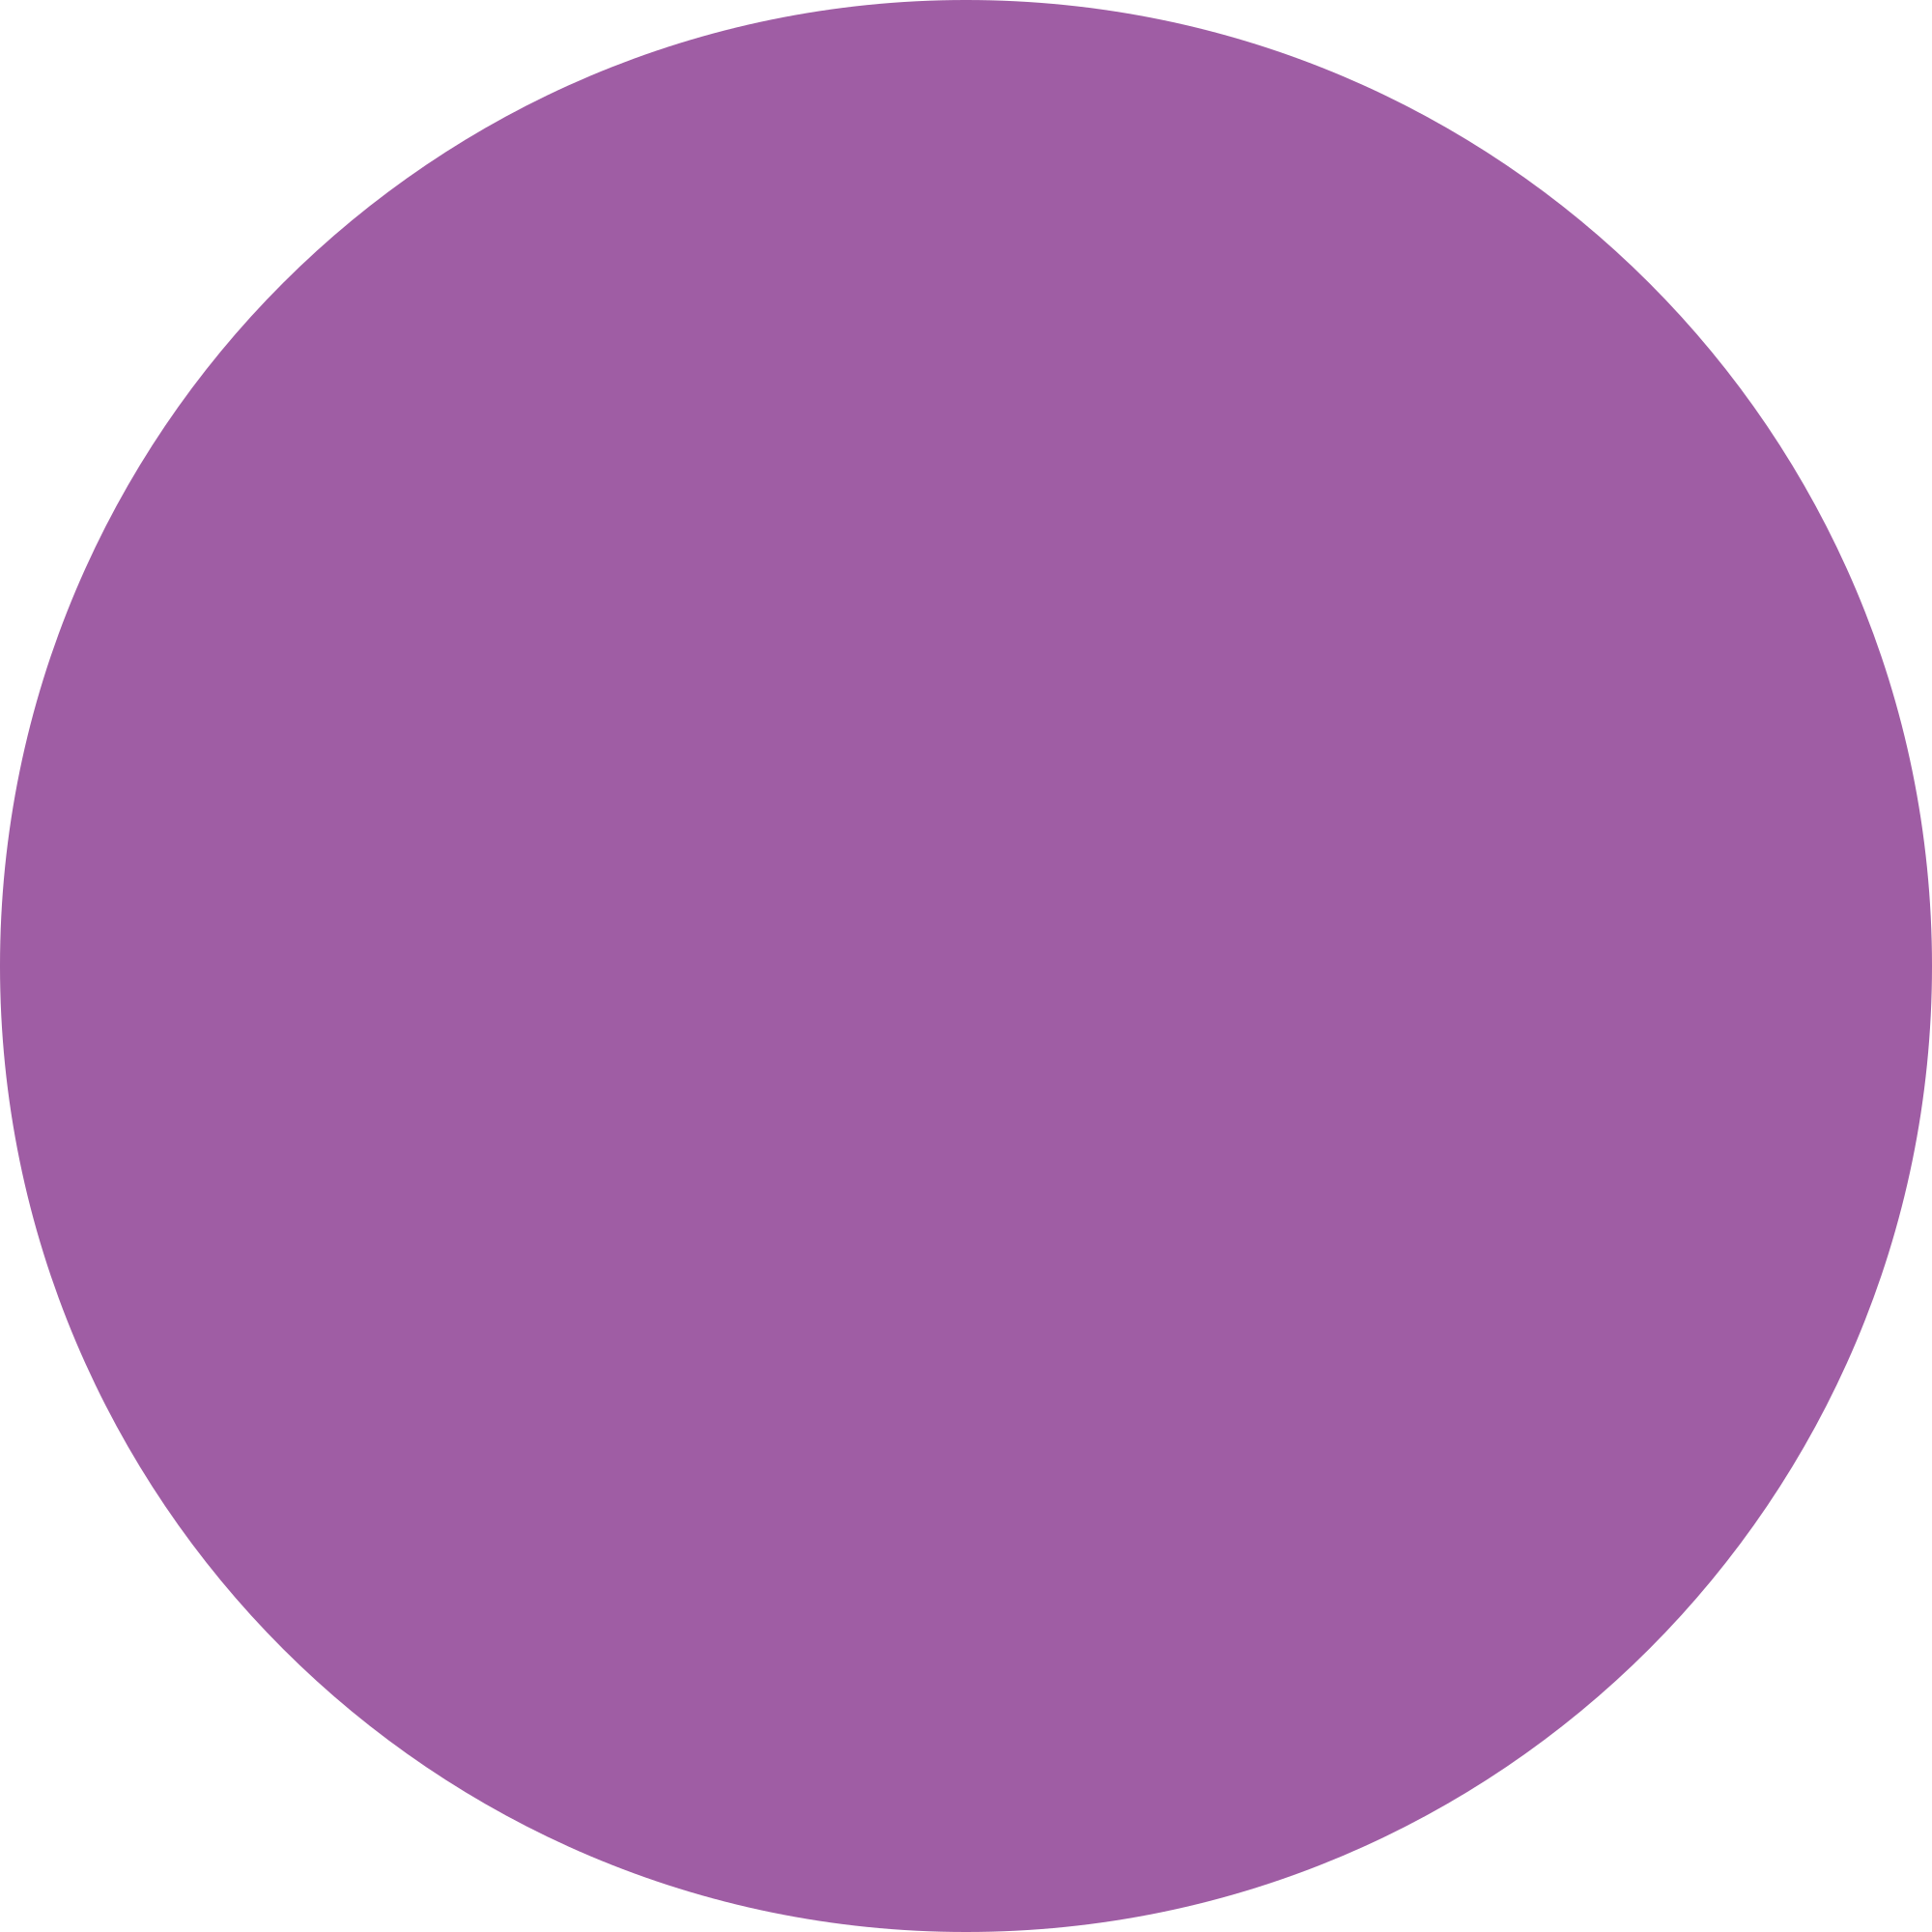 Purple line png. File lacmta circle svg